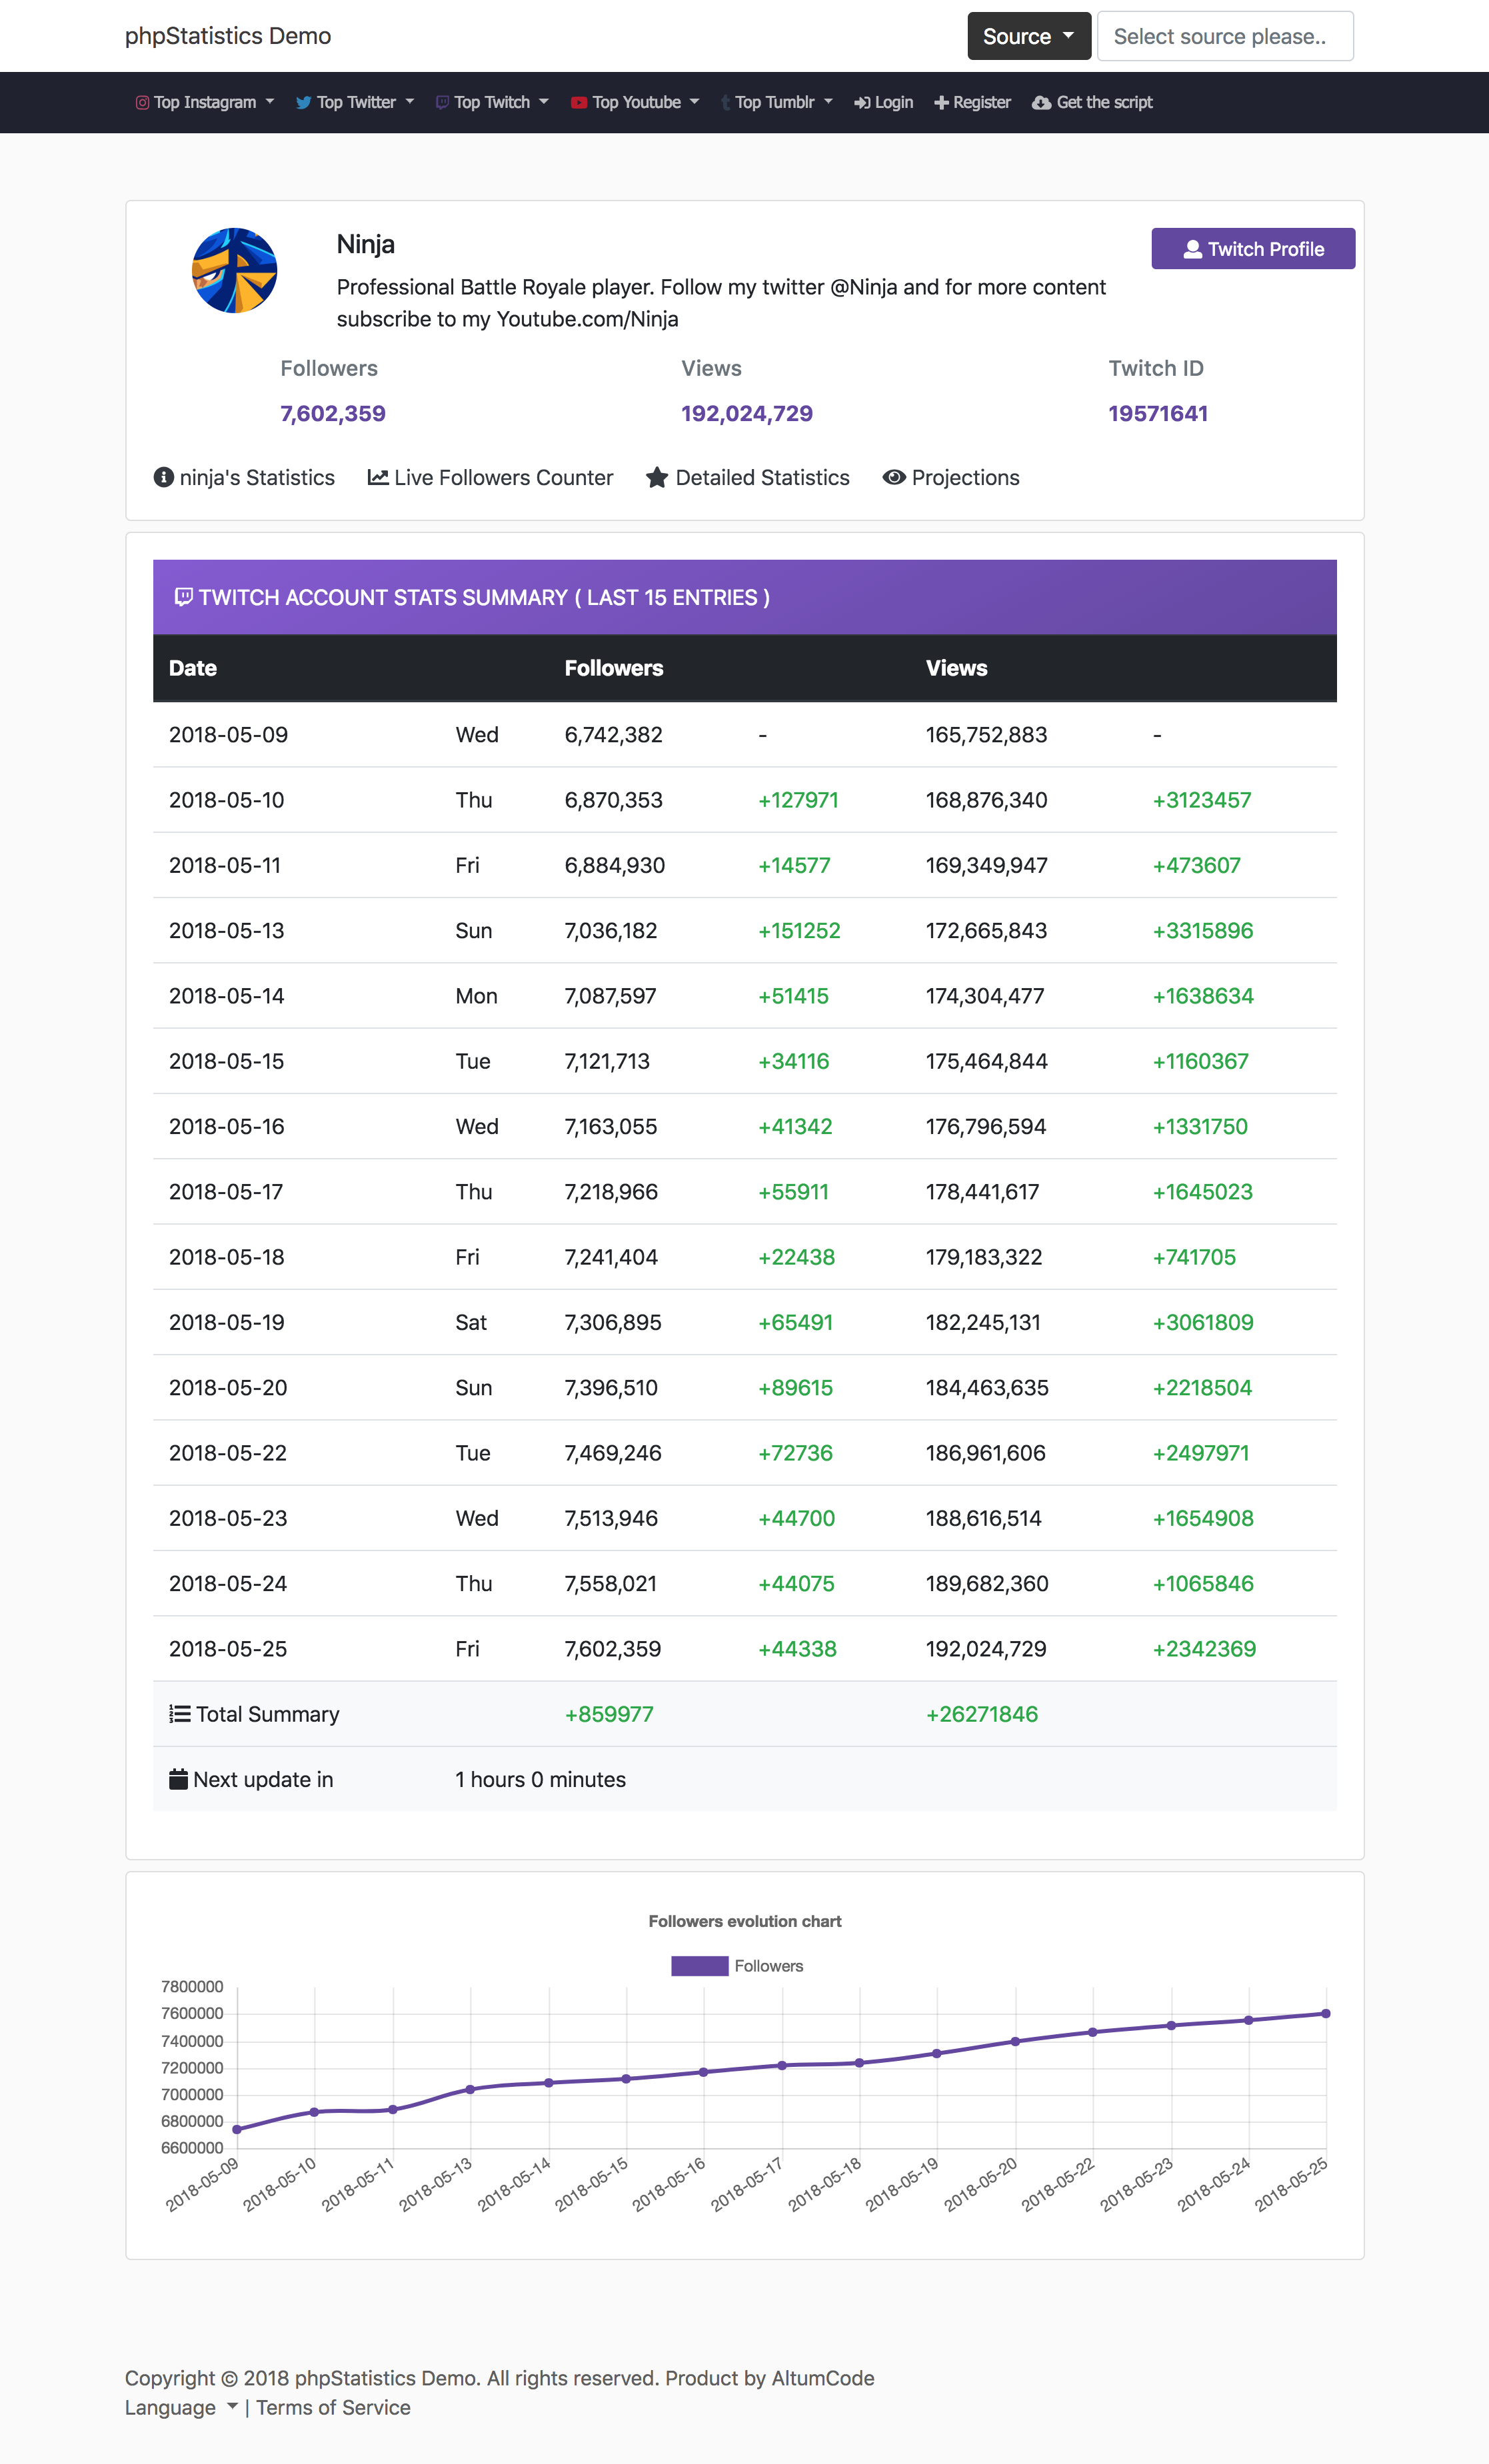 phpStatistics - Social Tracking Tool for Instagram, Twitter, Twitch &  YouTube